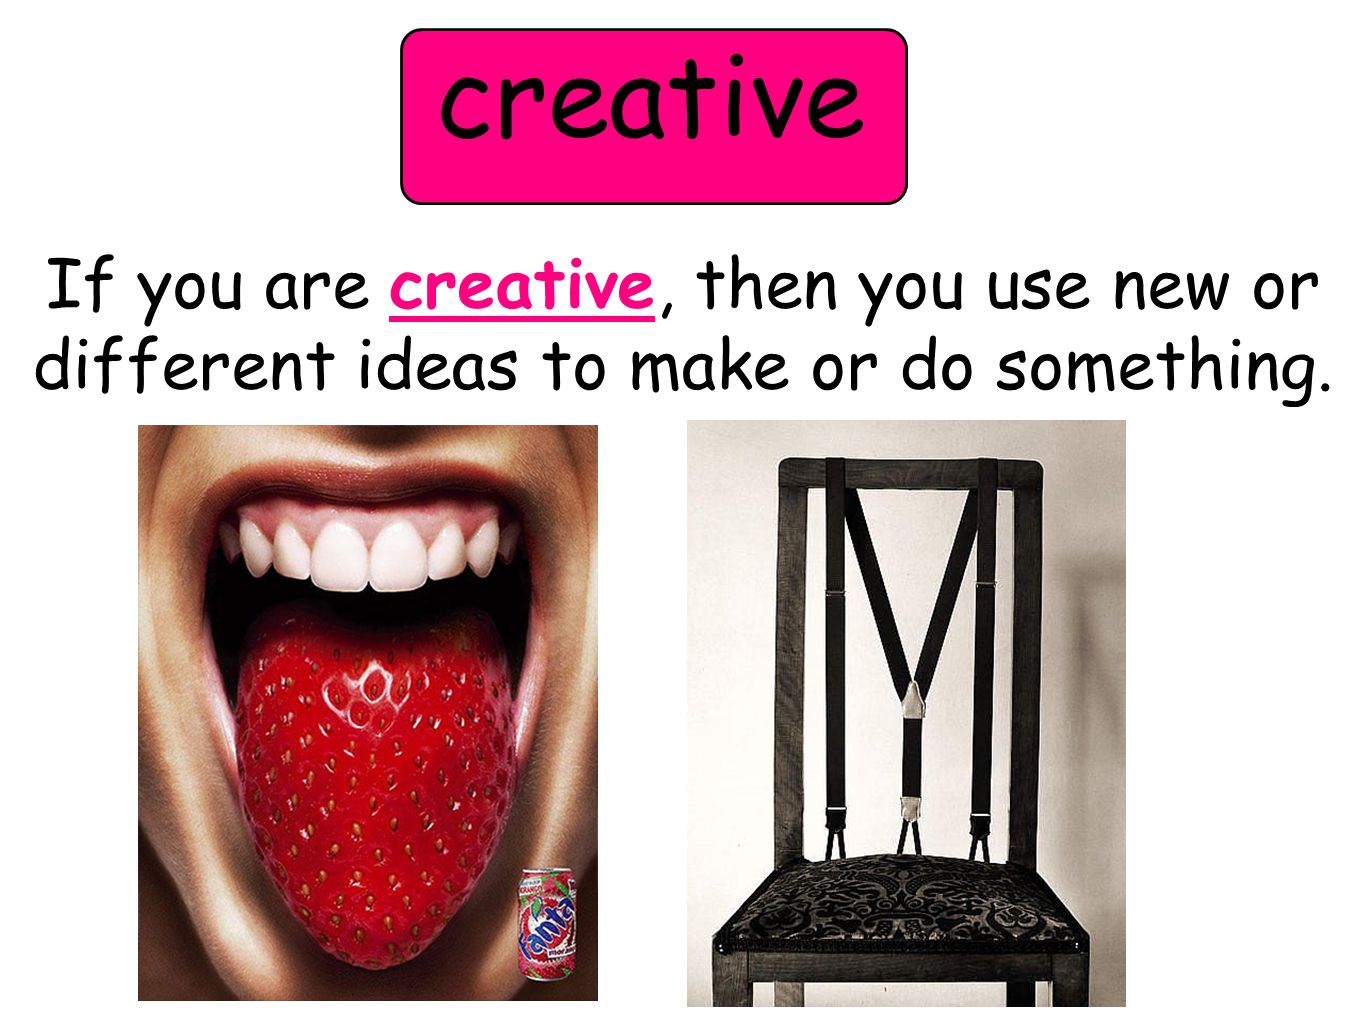 creative If you are creative, then you use new or different ideas to make or do something.